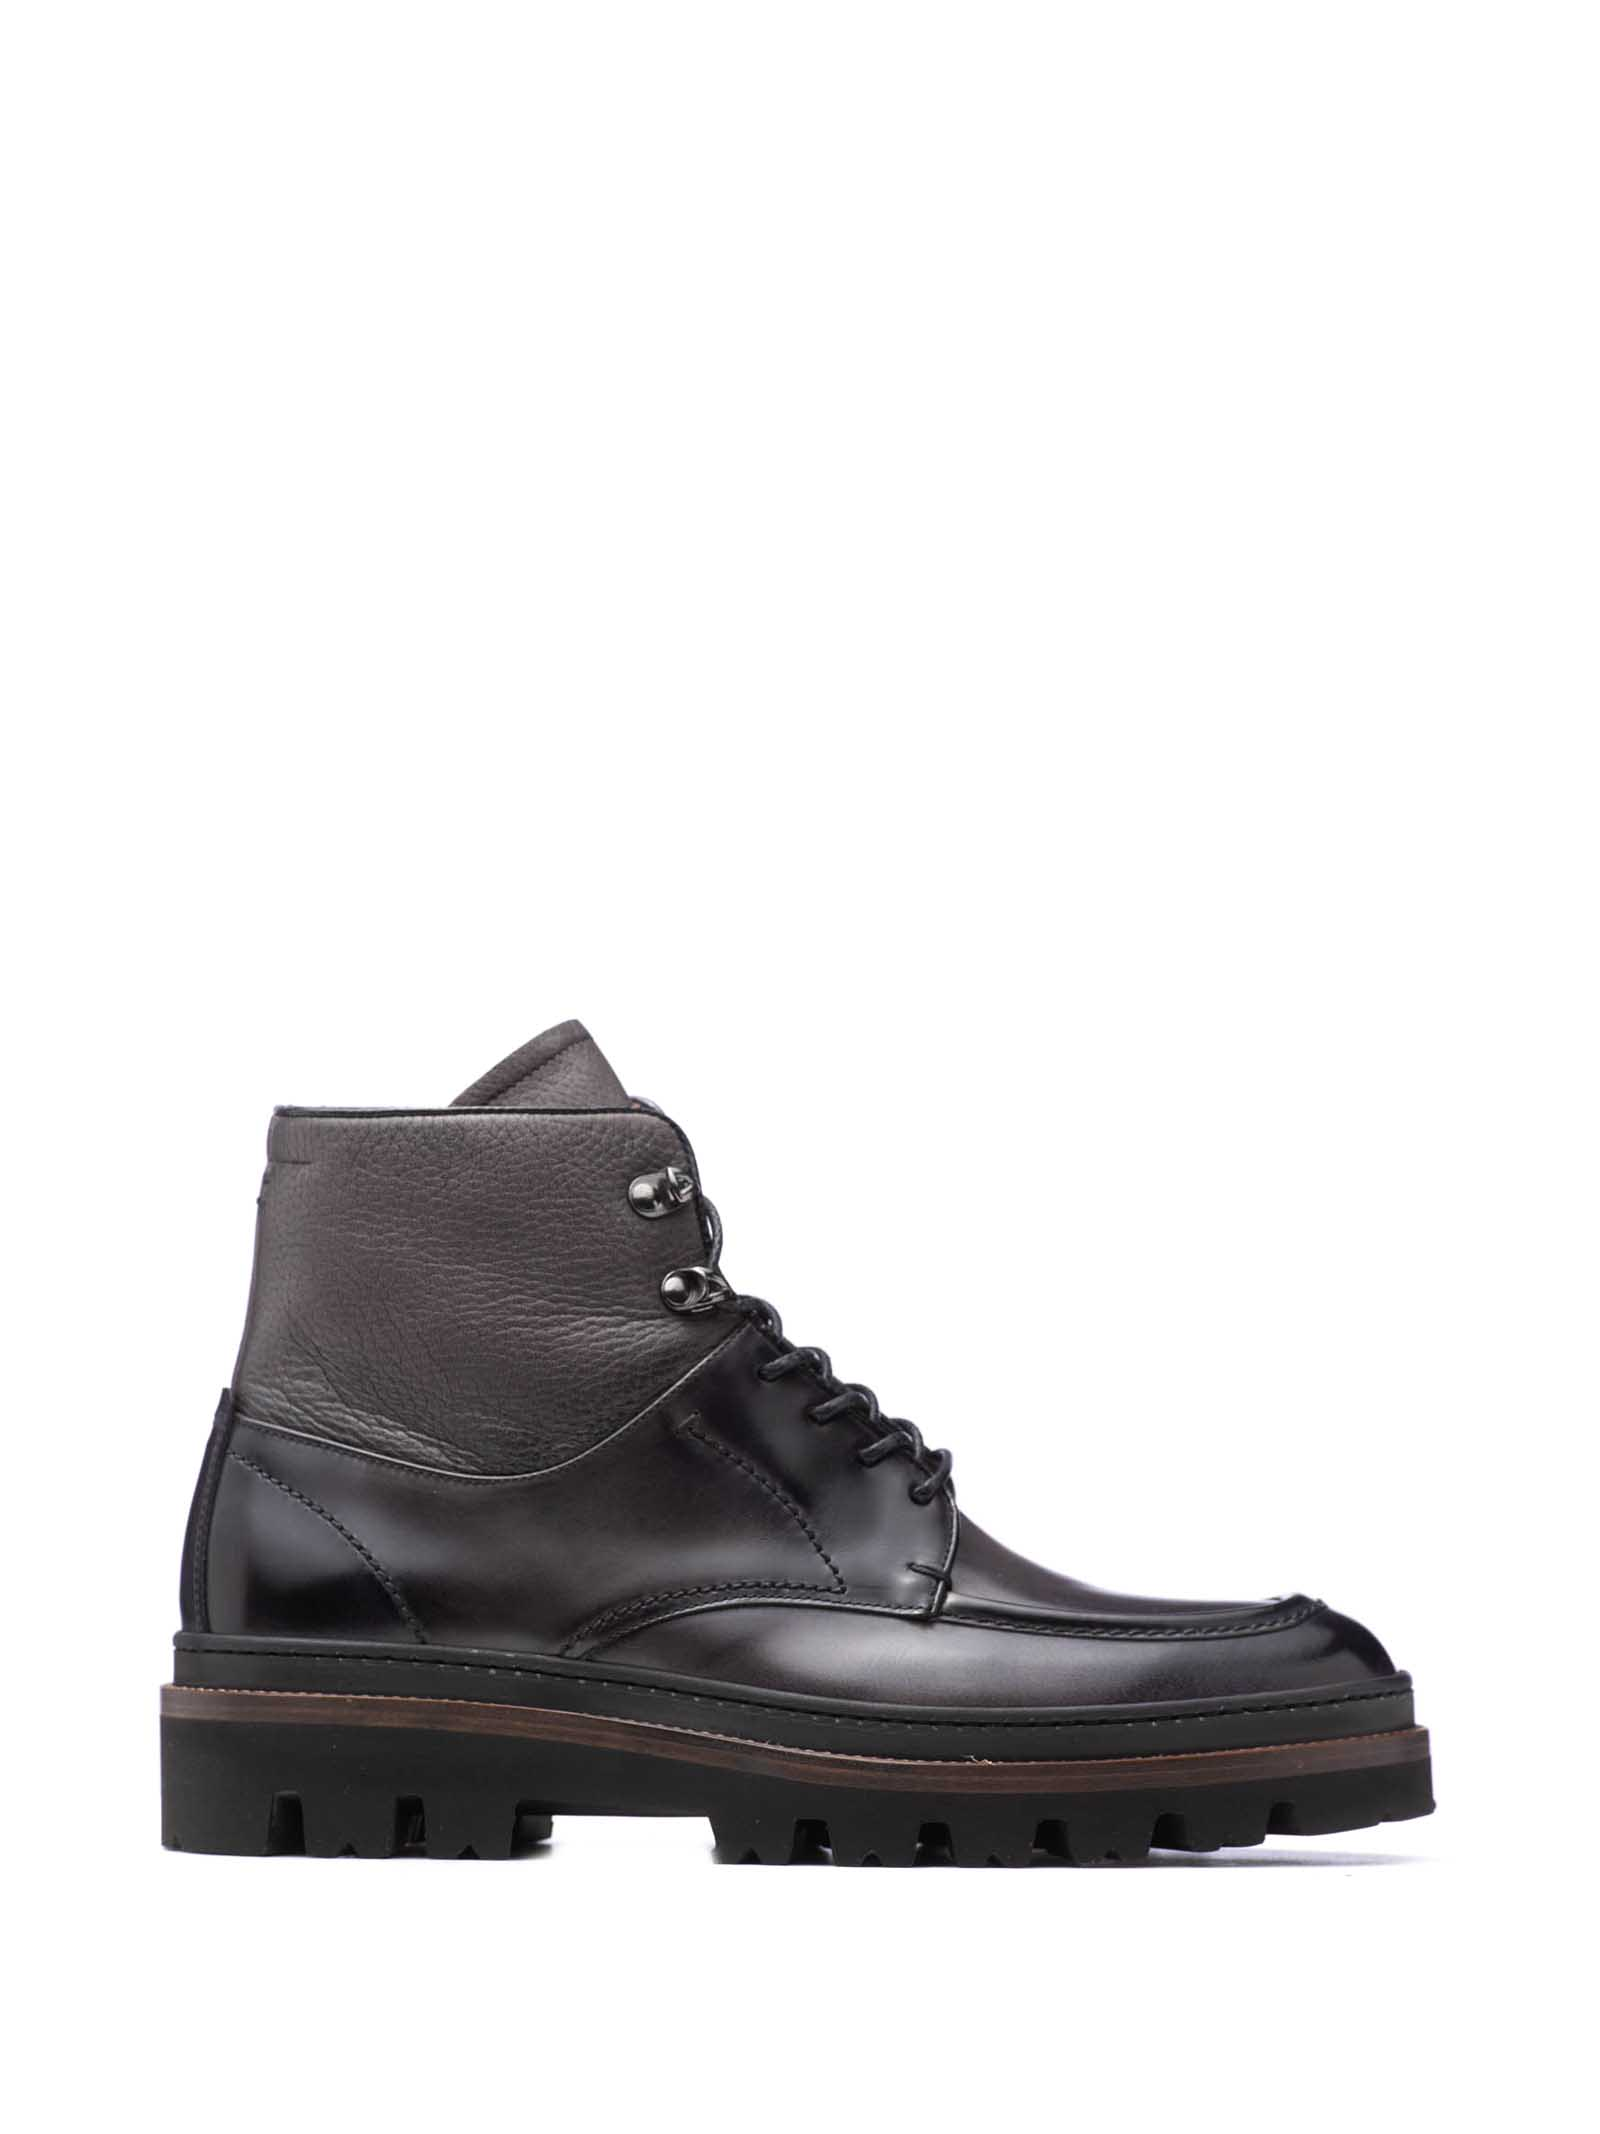 Fabi Fabi Leather Trekking Boots